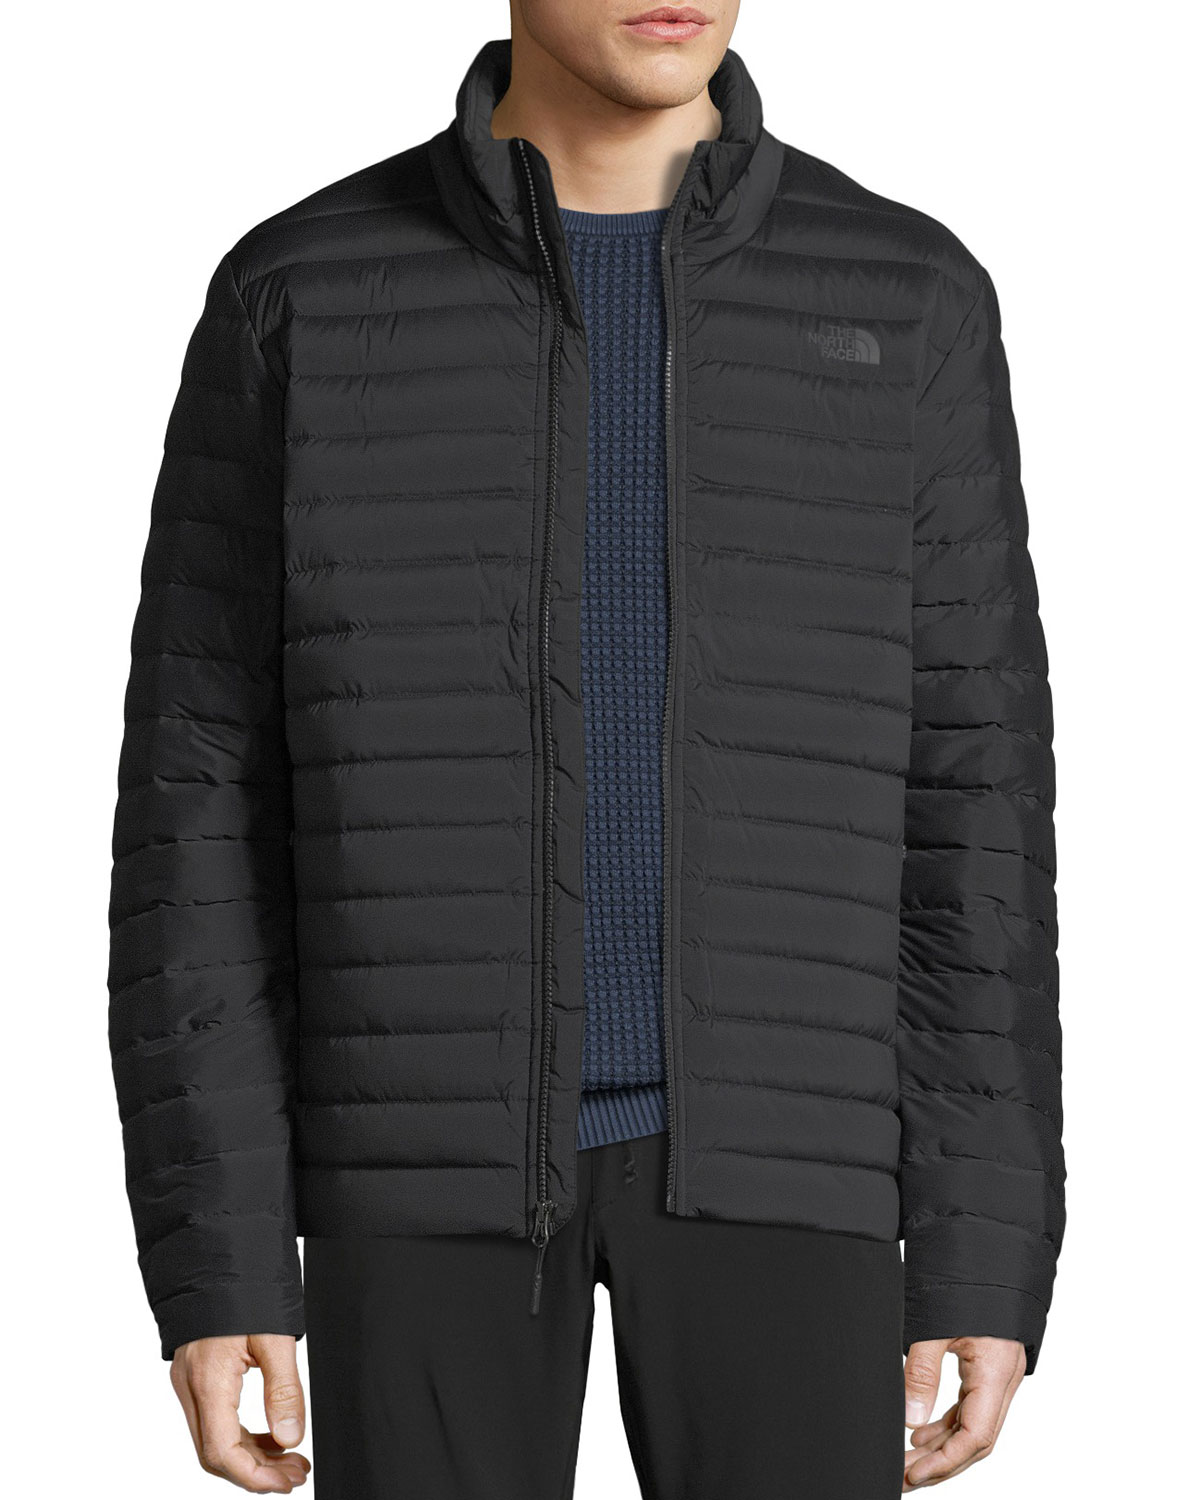 67c97d996 Men's Stretch Goose-Down Quilted Water-Repellant Jacket